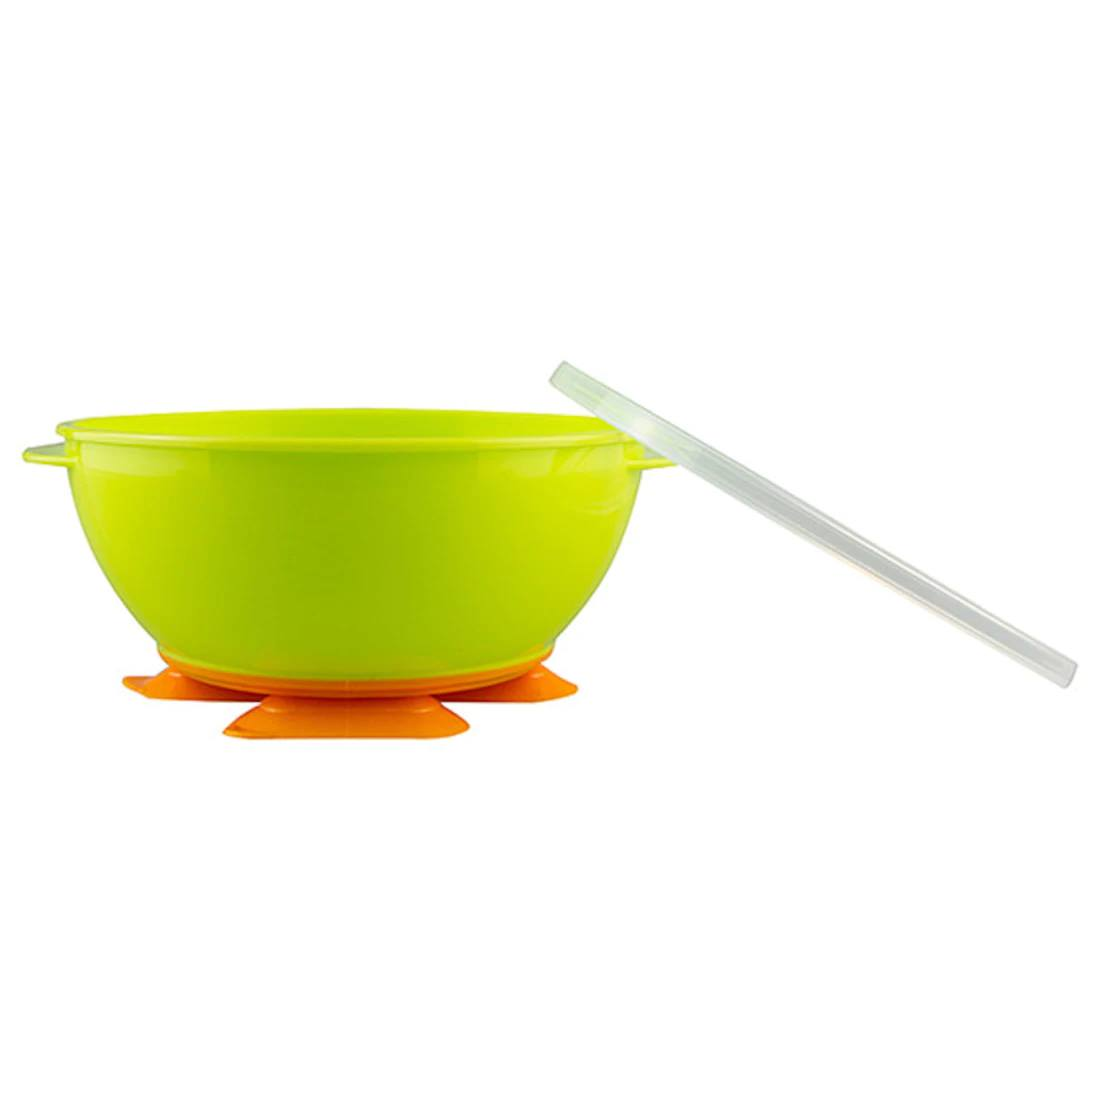 2 Tri-Suction Bowls - Green & Orange 9+ months